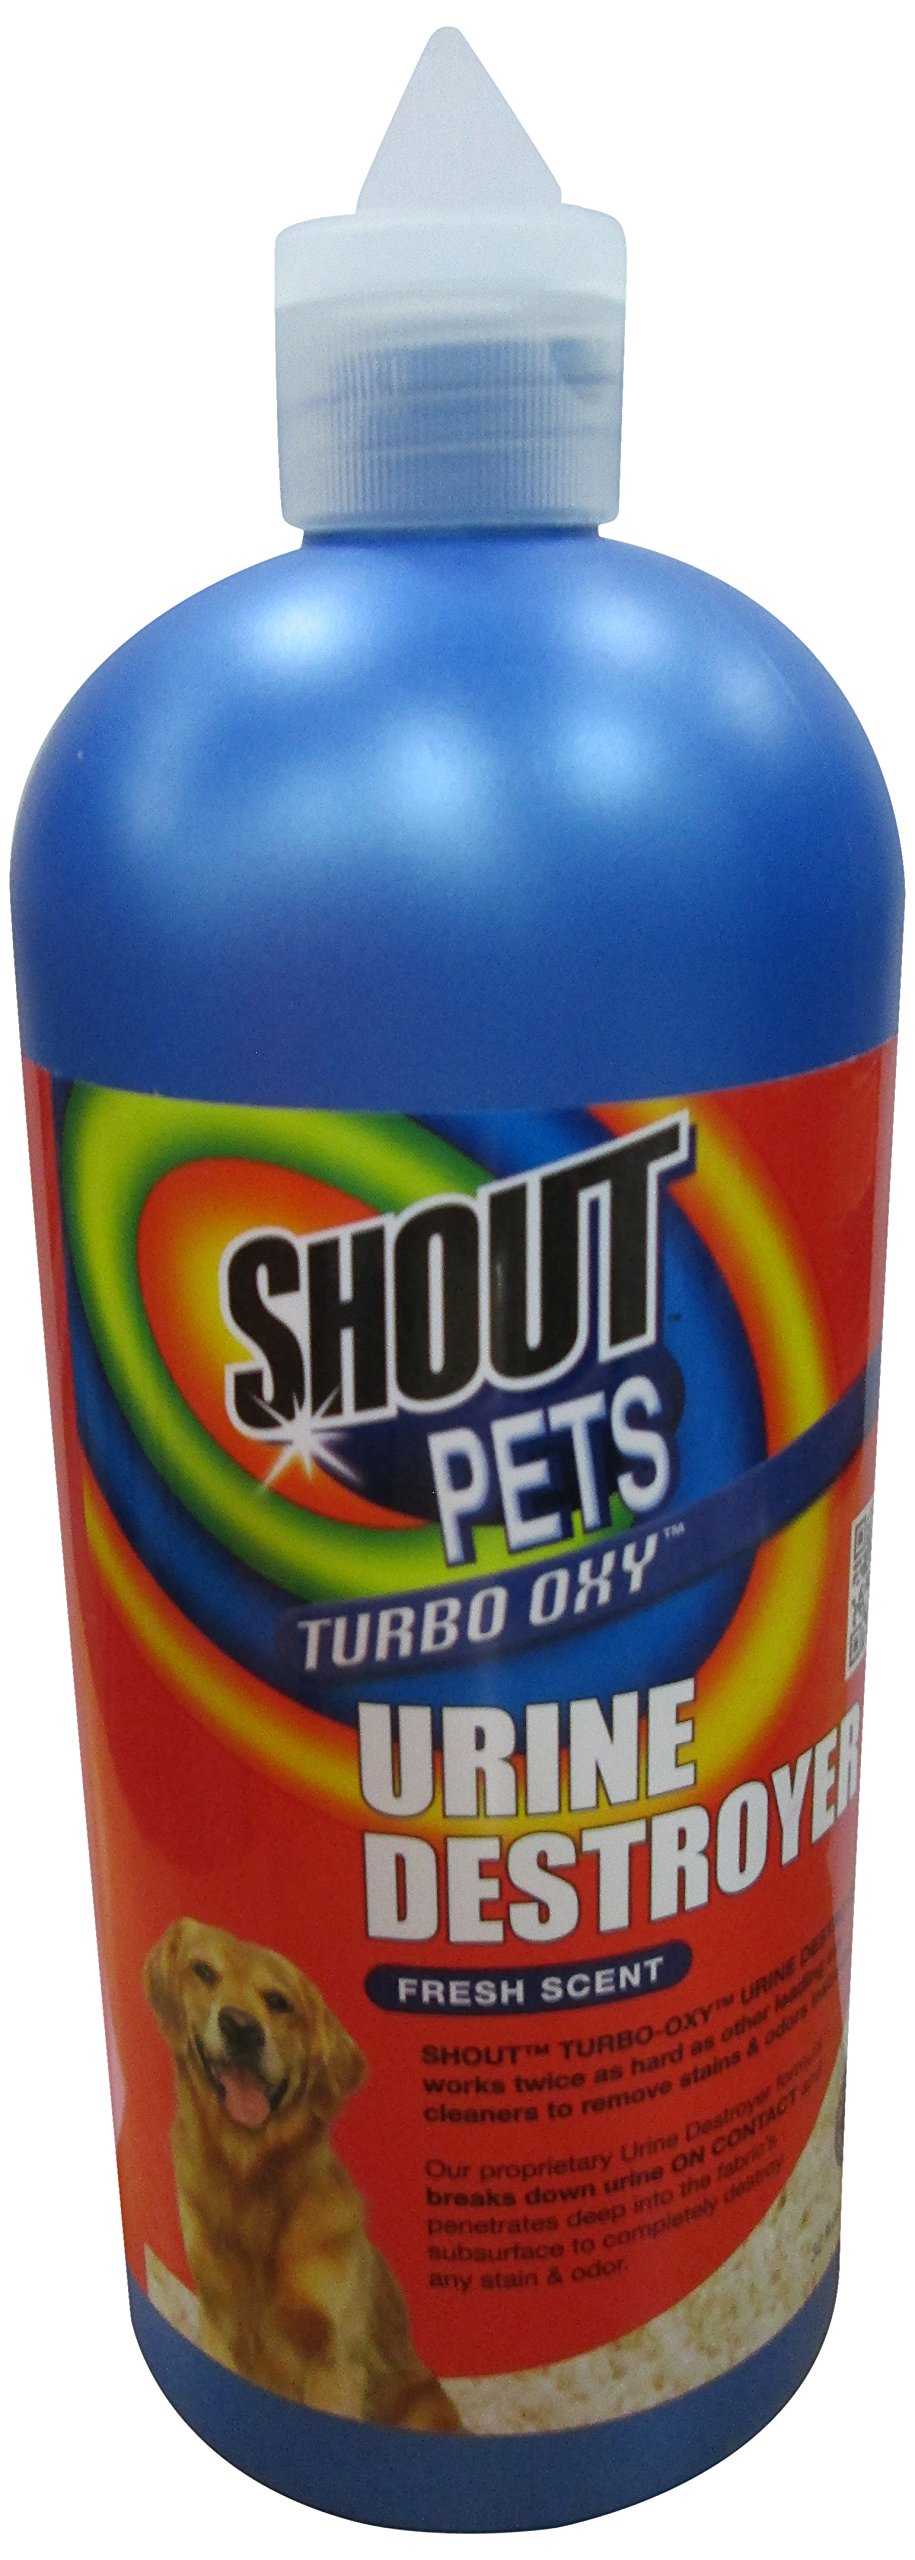 Shout for Pets Turbo Oxy Urine Destroyer   Best Cleaner to Remove Dog Urine Stains, 32 ounces, Fresh Scent